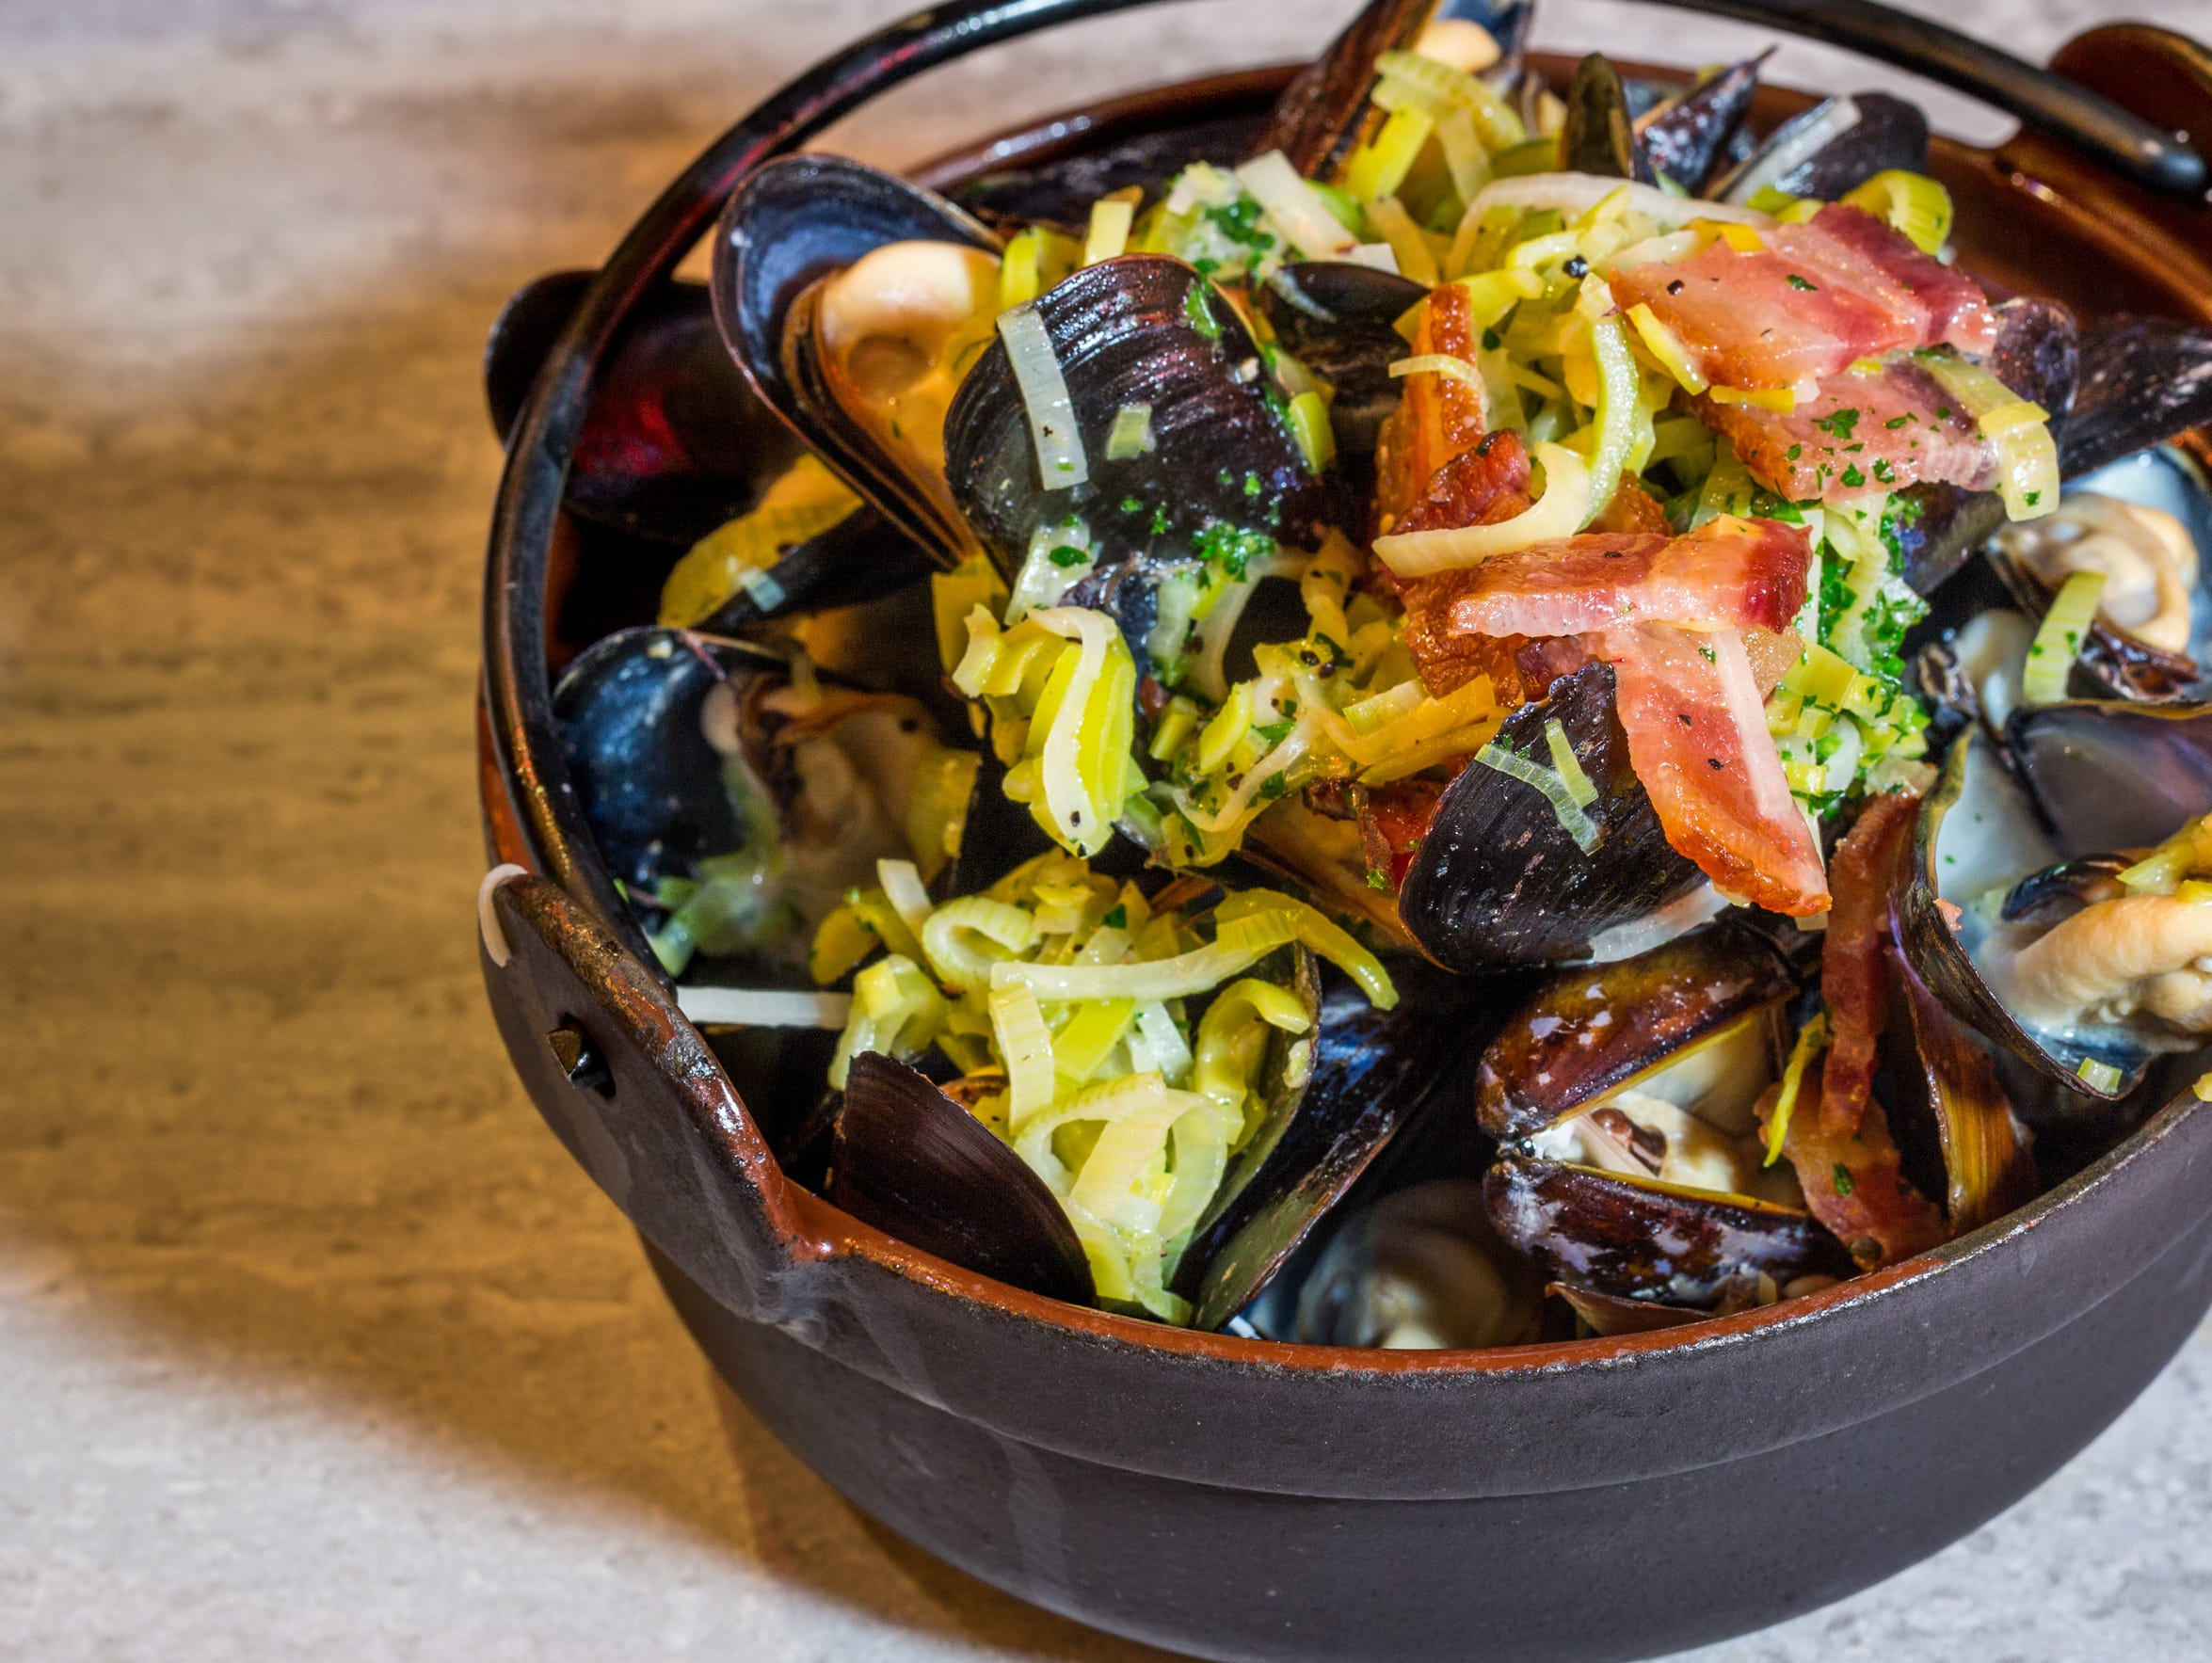 A crock brims with mussels, leaks and salty pops of